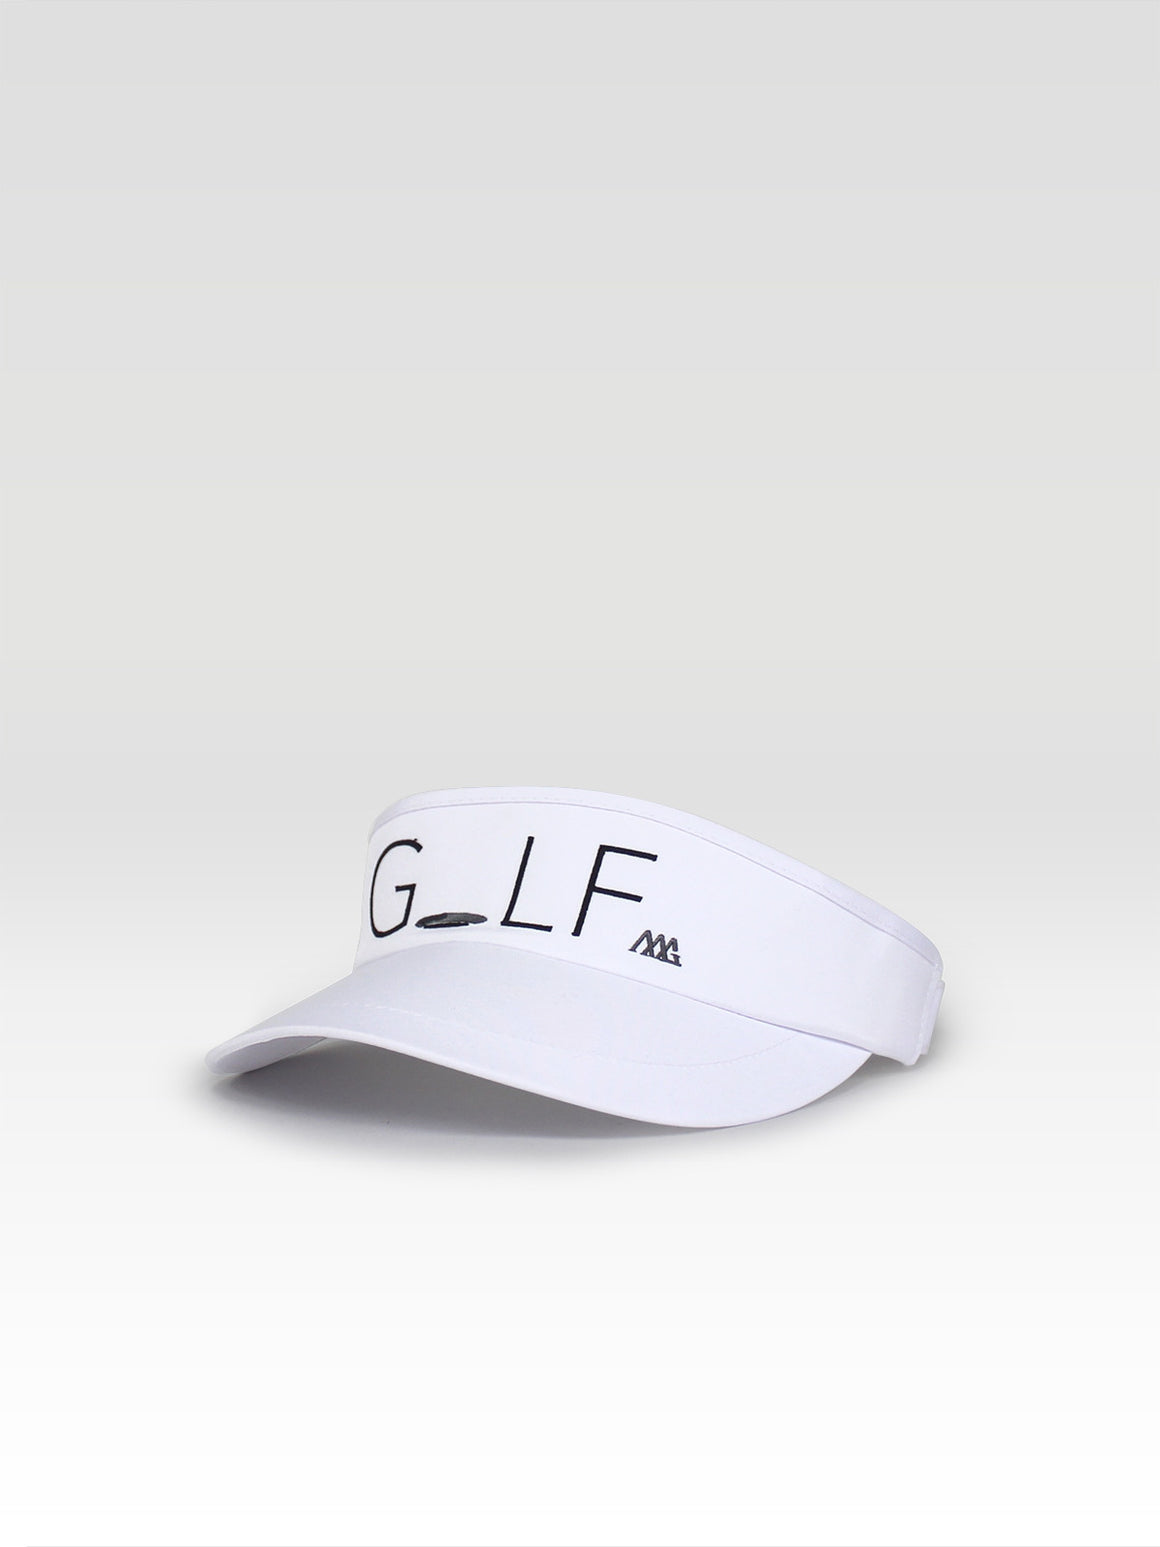 Hole In One Visor - White (Black / Smoke)